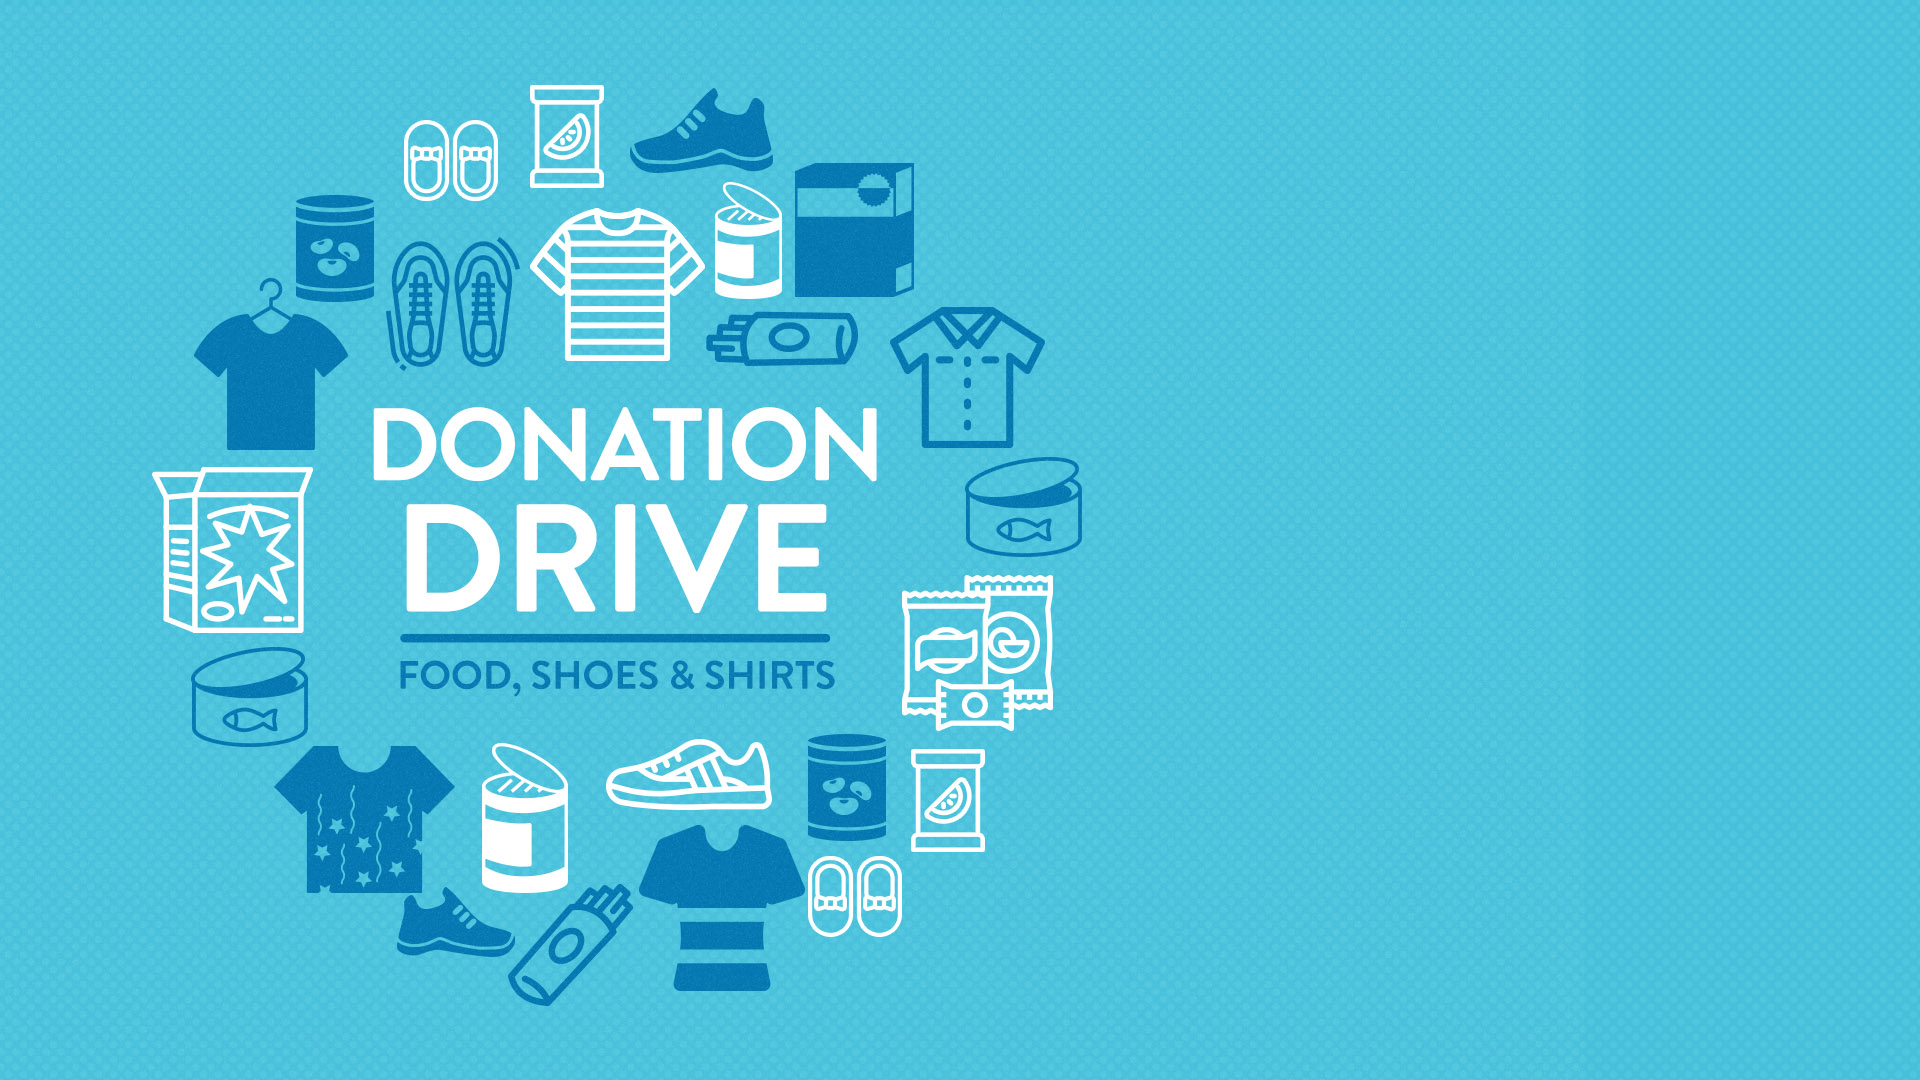 Image: Donation Drive – Food, Shoes, and Shirts